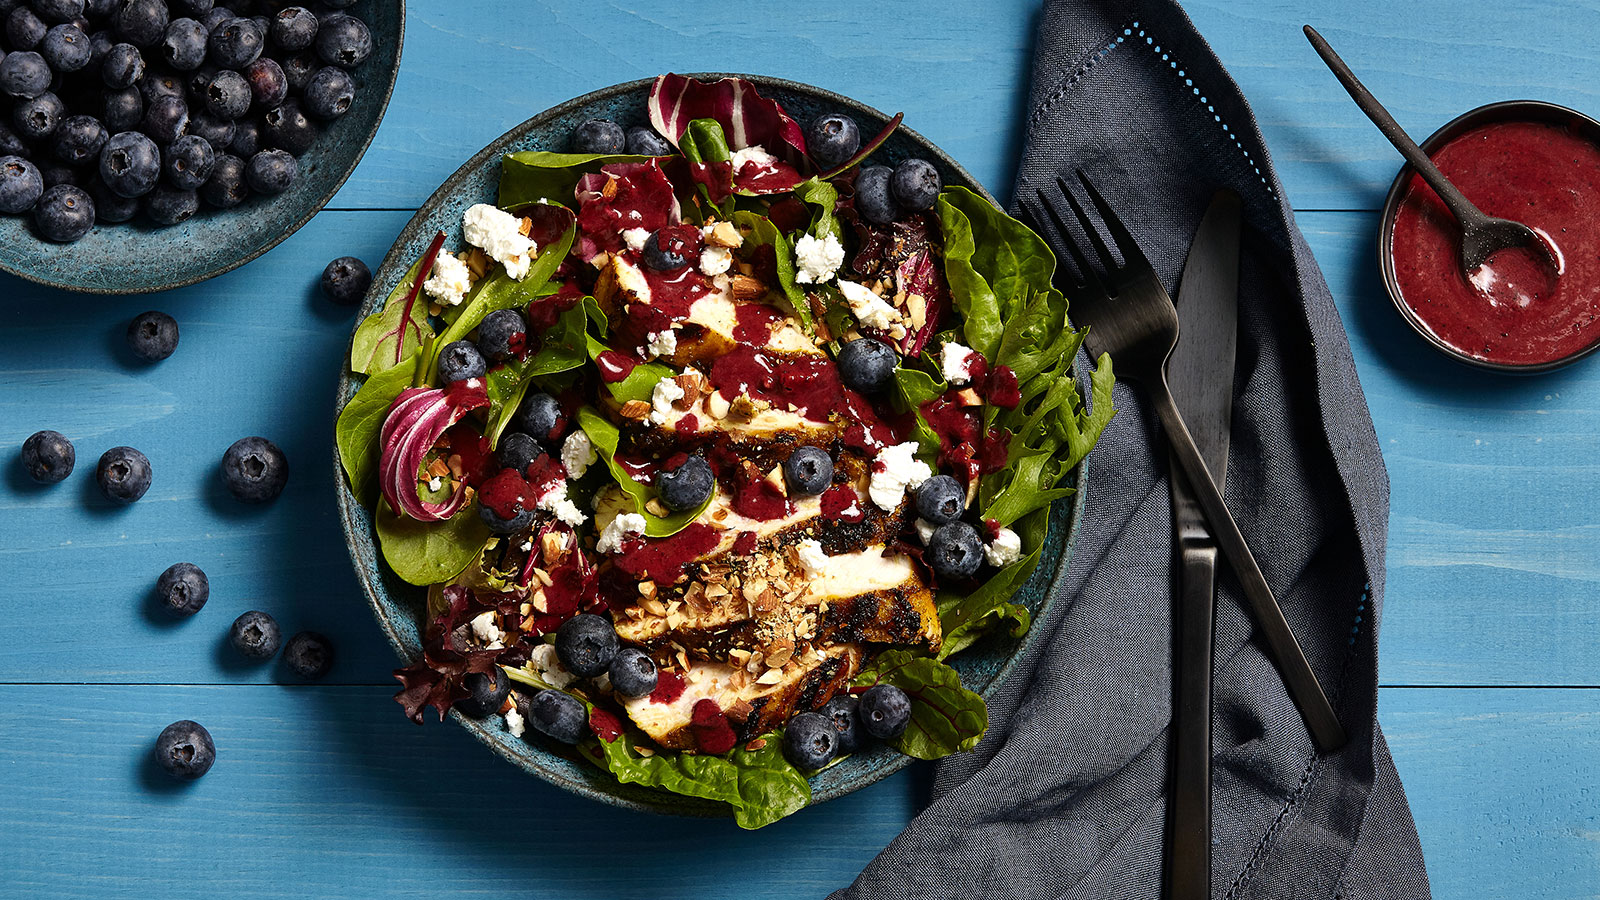 Blueberry Salad with Grilled Chicken